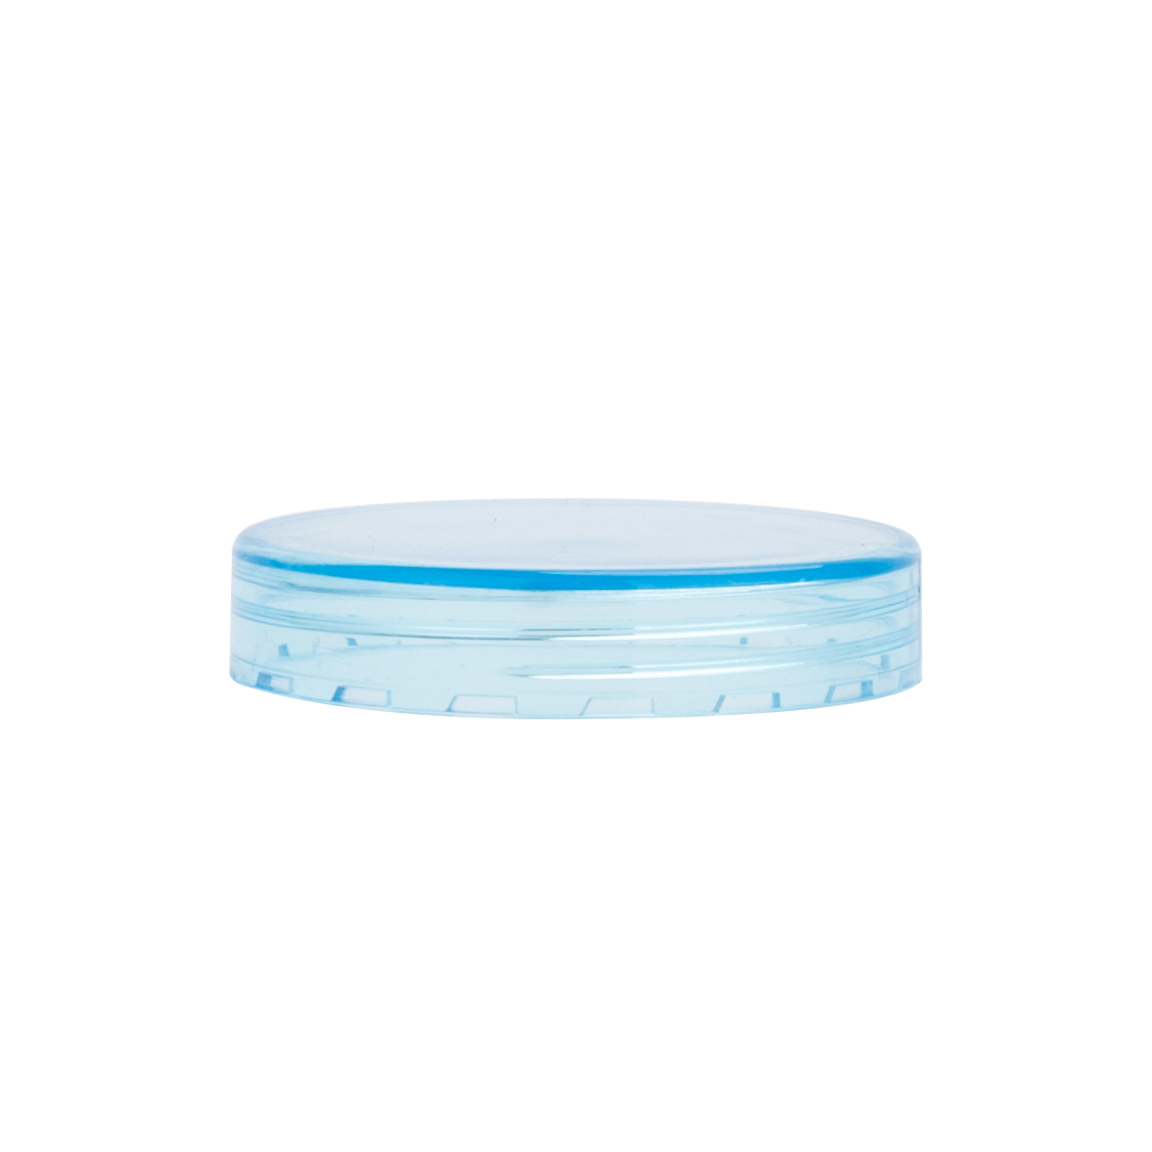 Wholesale Cosmetics Plastic Jars